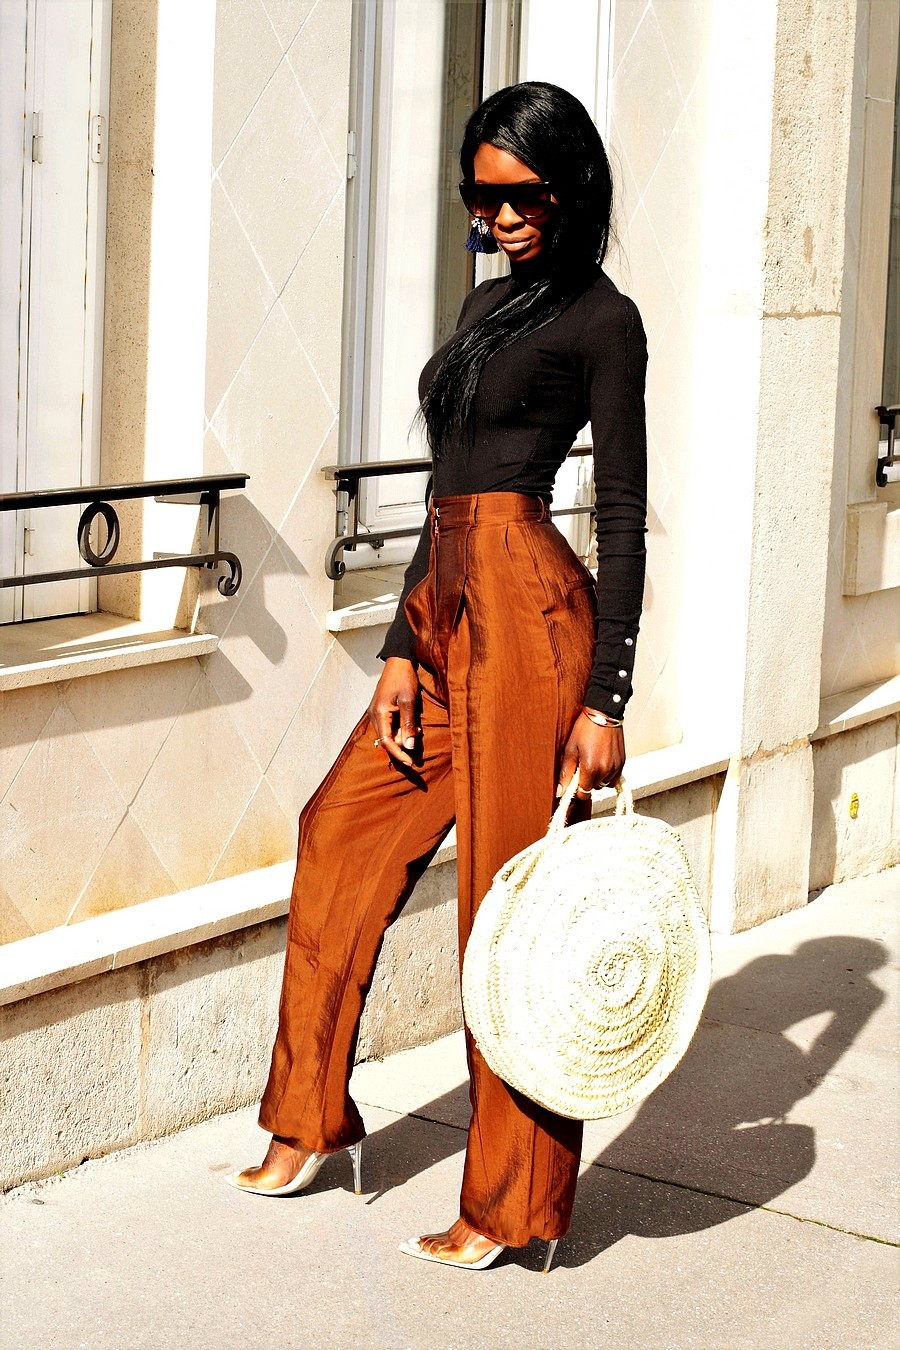 comment-porter-pantalon-large-inspiration-look